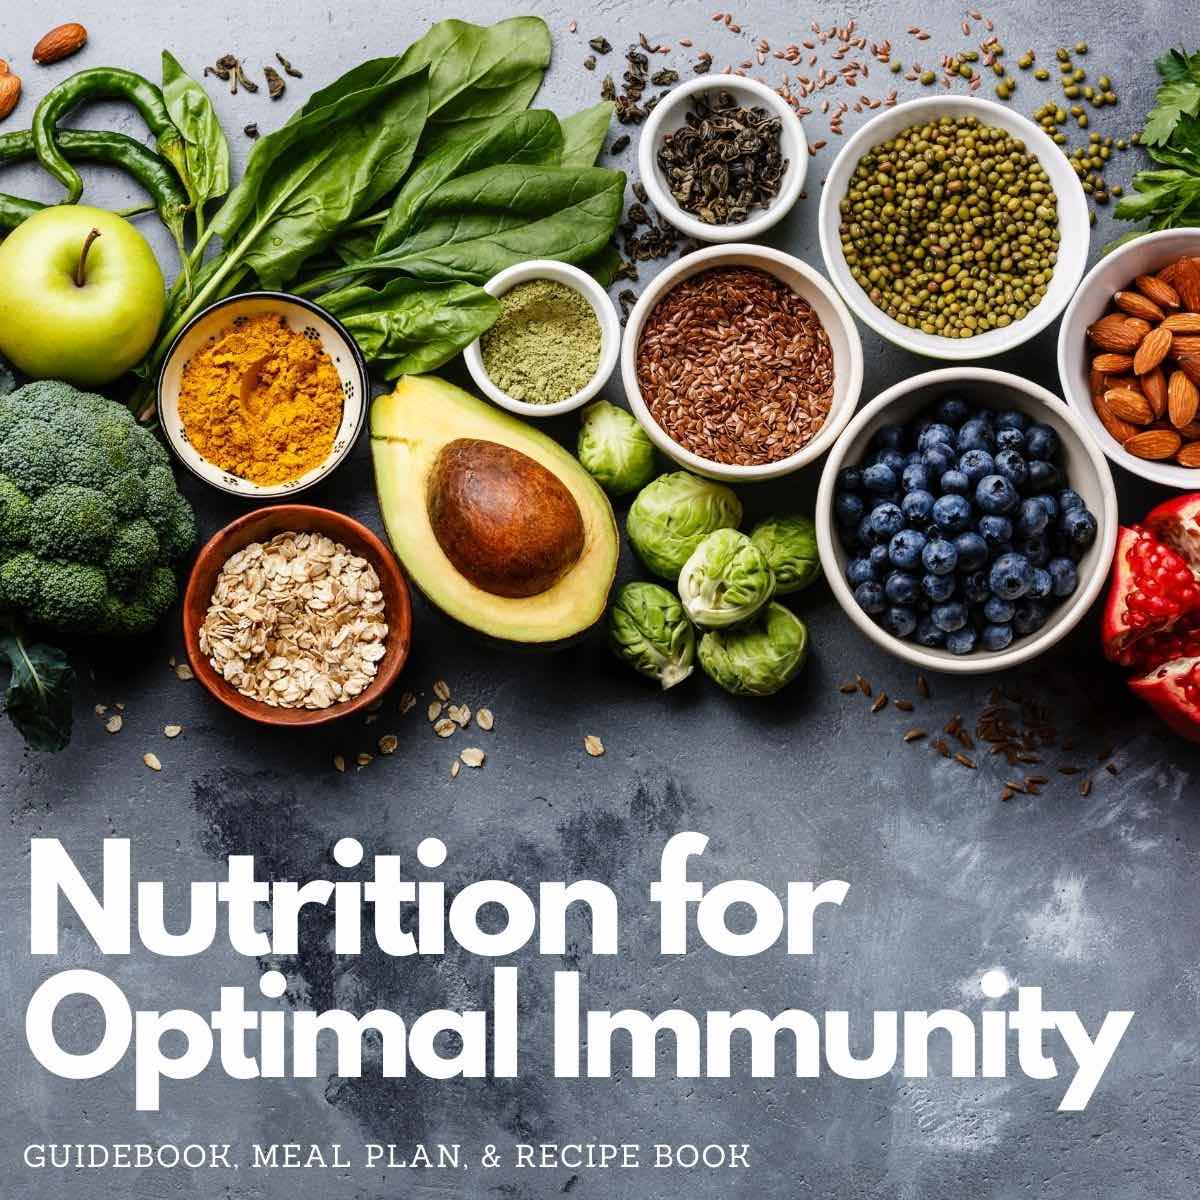 Breast Cancer Diet and Nutrition for Optimal Immunity - various fruits, vegetables, nuts, seeds and whole grains on a chalkboard background.